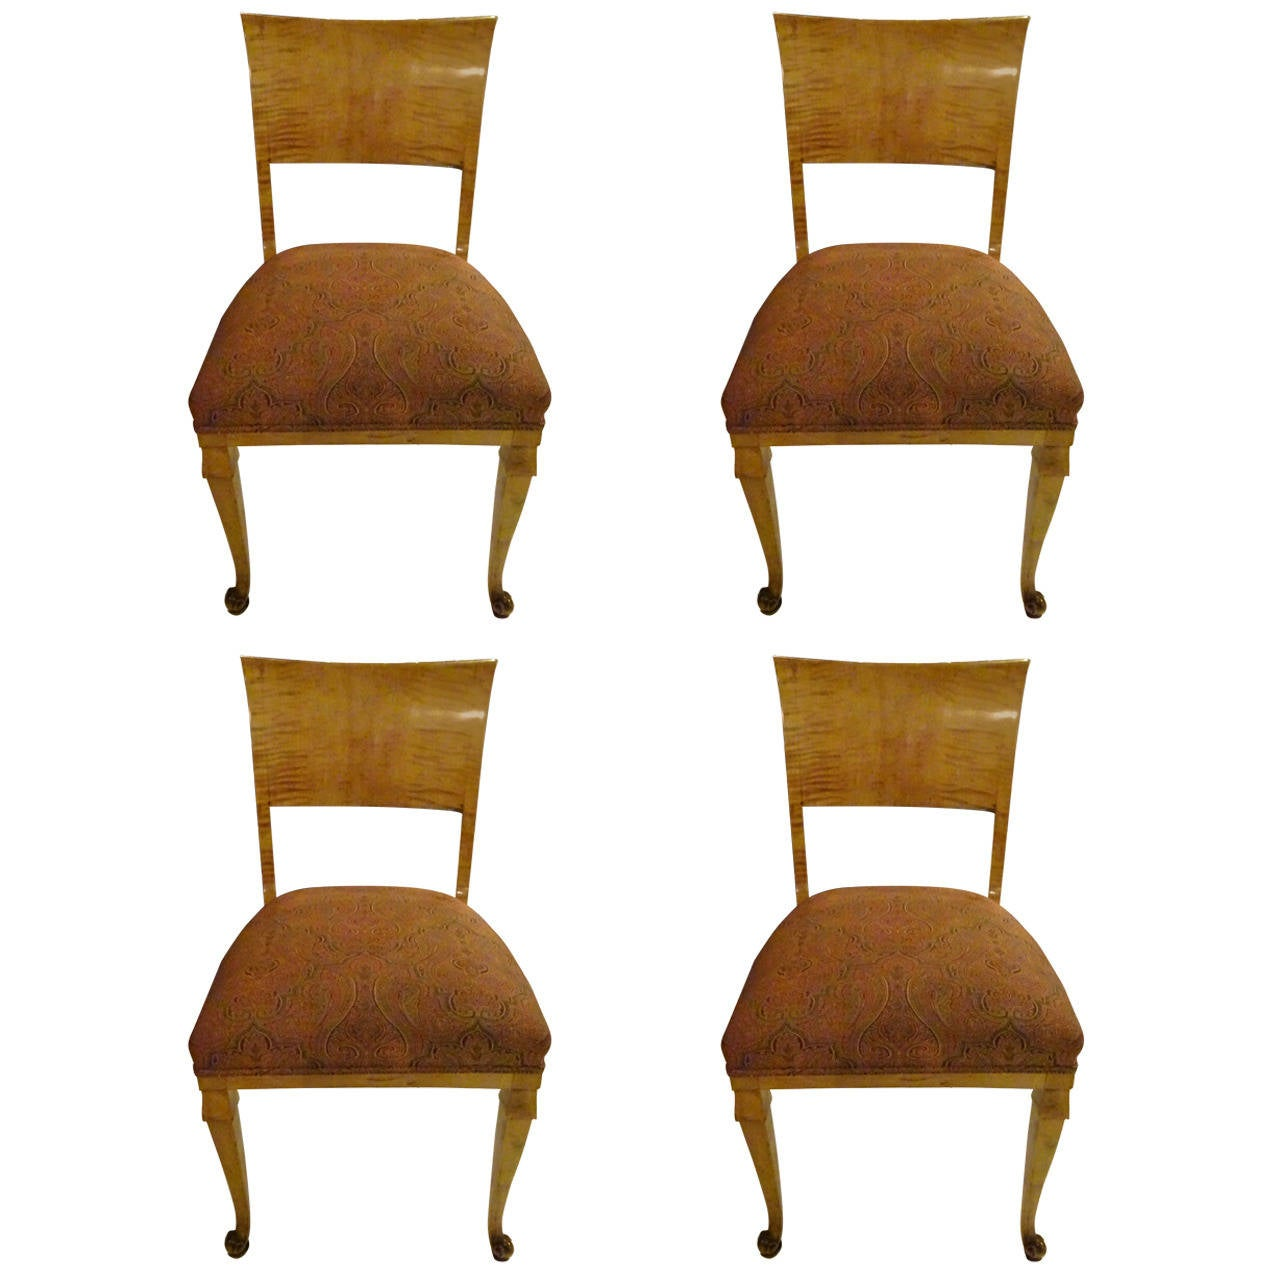 Four Biedermeier Dining Chairs at 1stdibs